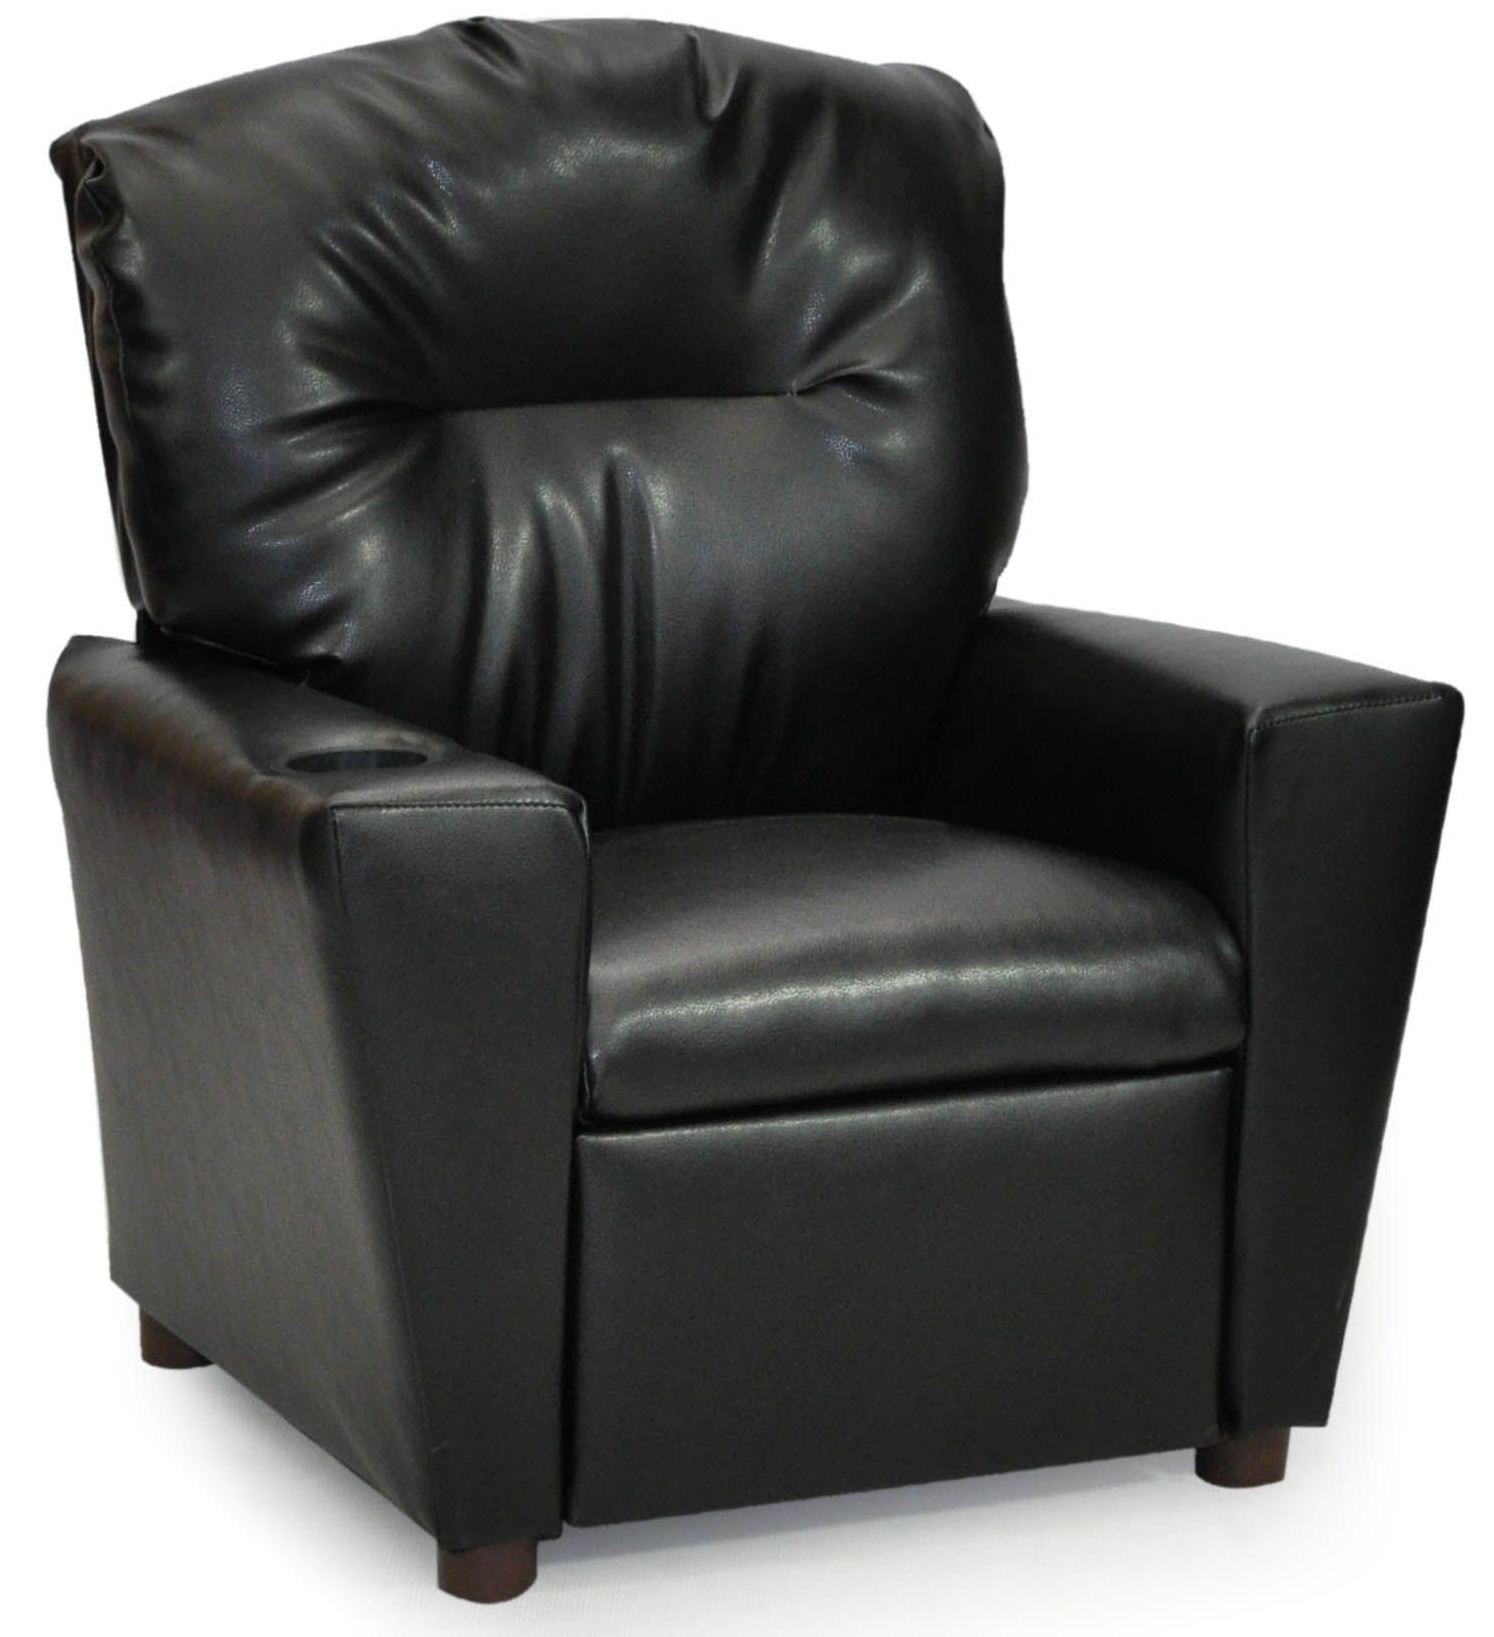 Juvenile Black Kids Recliner With Cup Holder From Kidz